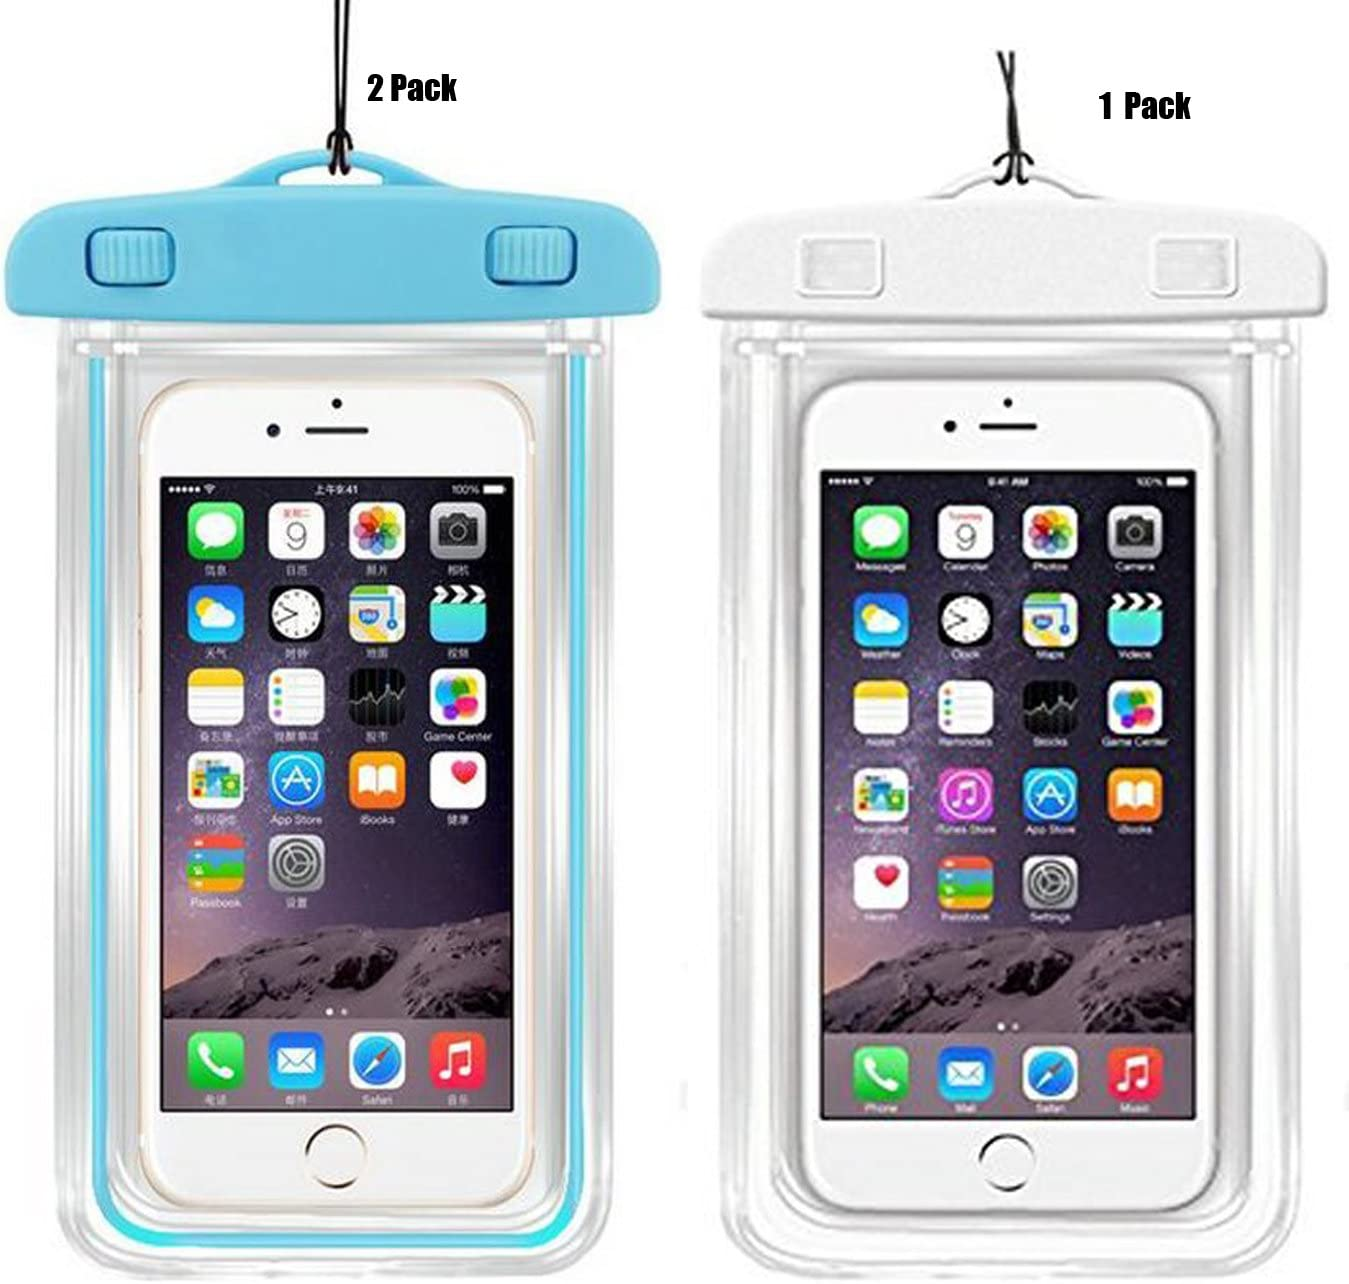 3Pack Universal Waterproof Case, CaseHQ Clear Transparent Cellphone Waterproof, Dustproof Dry Bag with Neck Strap for iPhone 8,8plus,7,7 Plus,6S,6S Plus,Google Pixel,and All Devices Up to 5.8 Inches